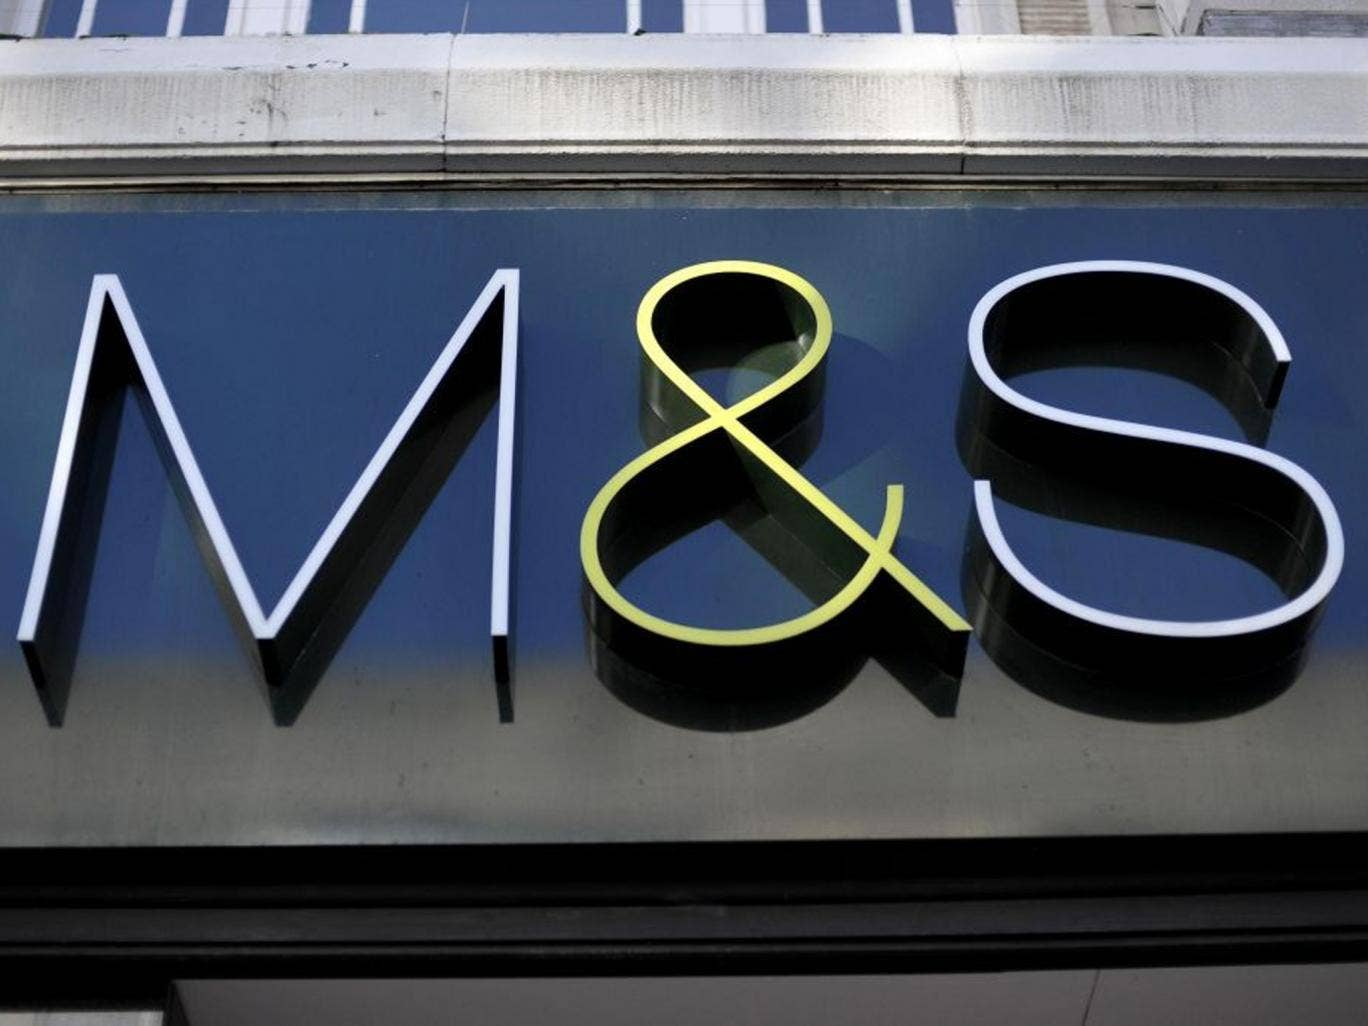 Marks & Spencer's decline in like-for-like sales of 1.6 per cent for the 13 weeks to the end of June was broadly in line with expectations